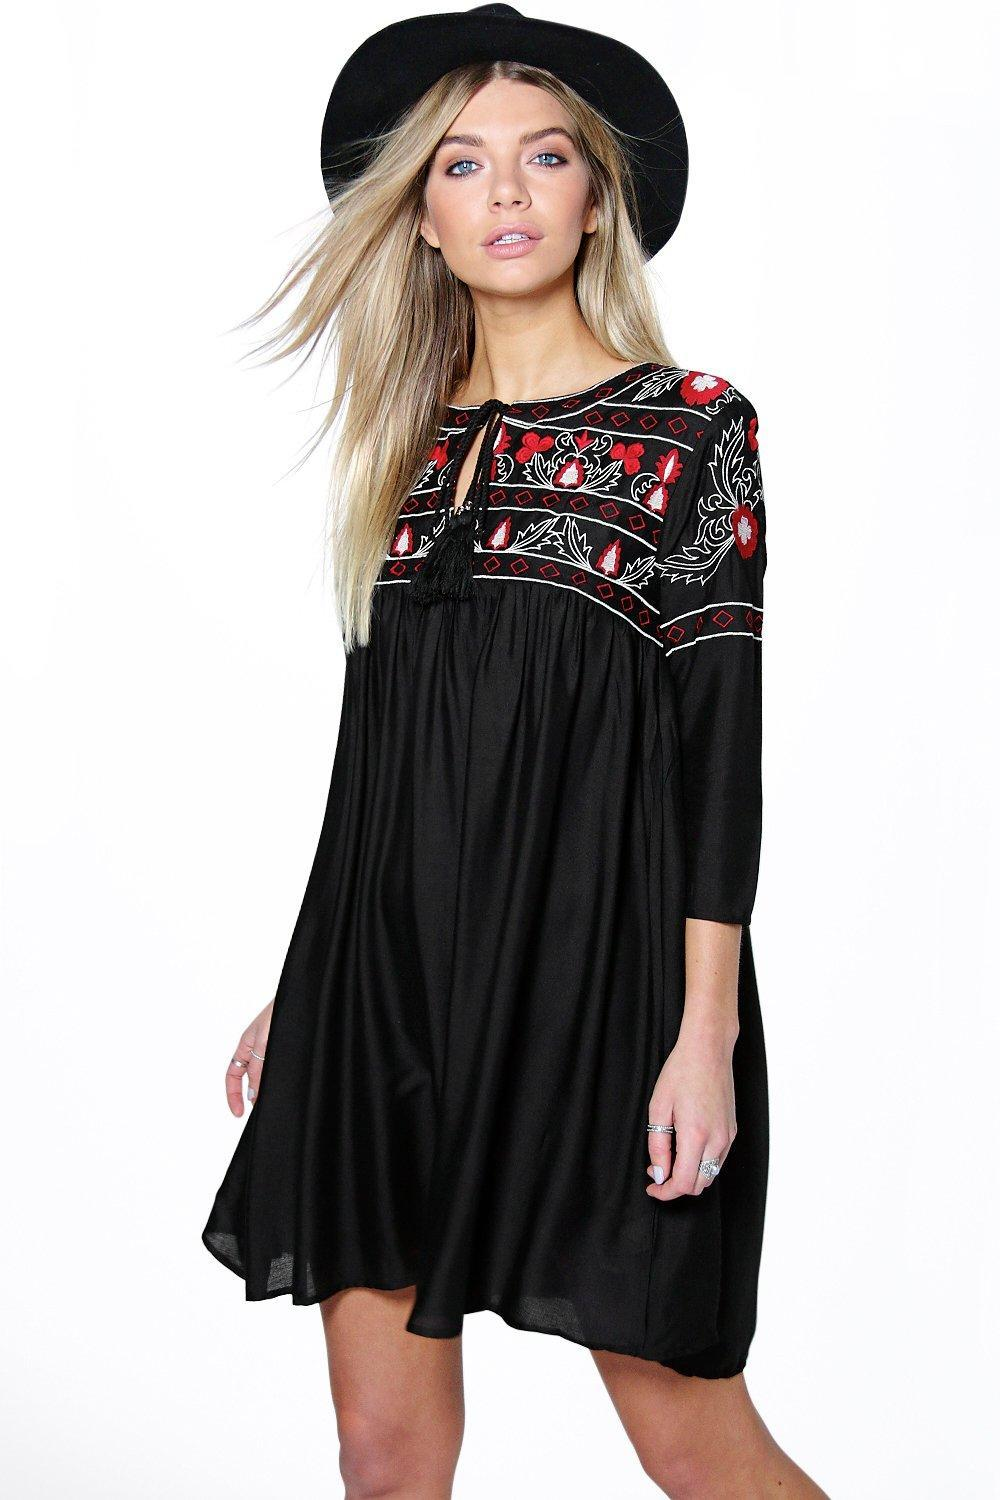 Abby Heavy Embroidered Smock Dress Black - style: smock; fit: loose; predominant colour: burgundy; occasions: casual; length: just above the knee; neckline: peep hole neckline; sleeve length: 3/4 length; sleeve style: standard; pattern type: fabric; pattern size: standard; pattern: patterned/print; texture group: jersey - stretchy/drapey; embellishment: embroidered; fibres: viscose/rayon - mix; season: s/s 2016; wardrobe: highlight